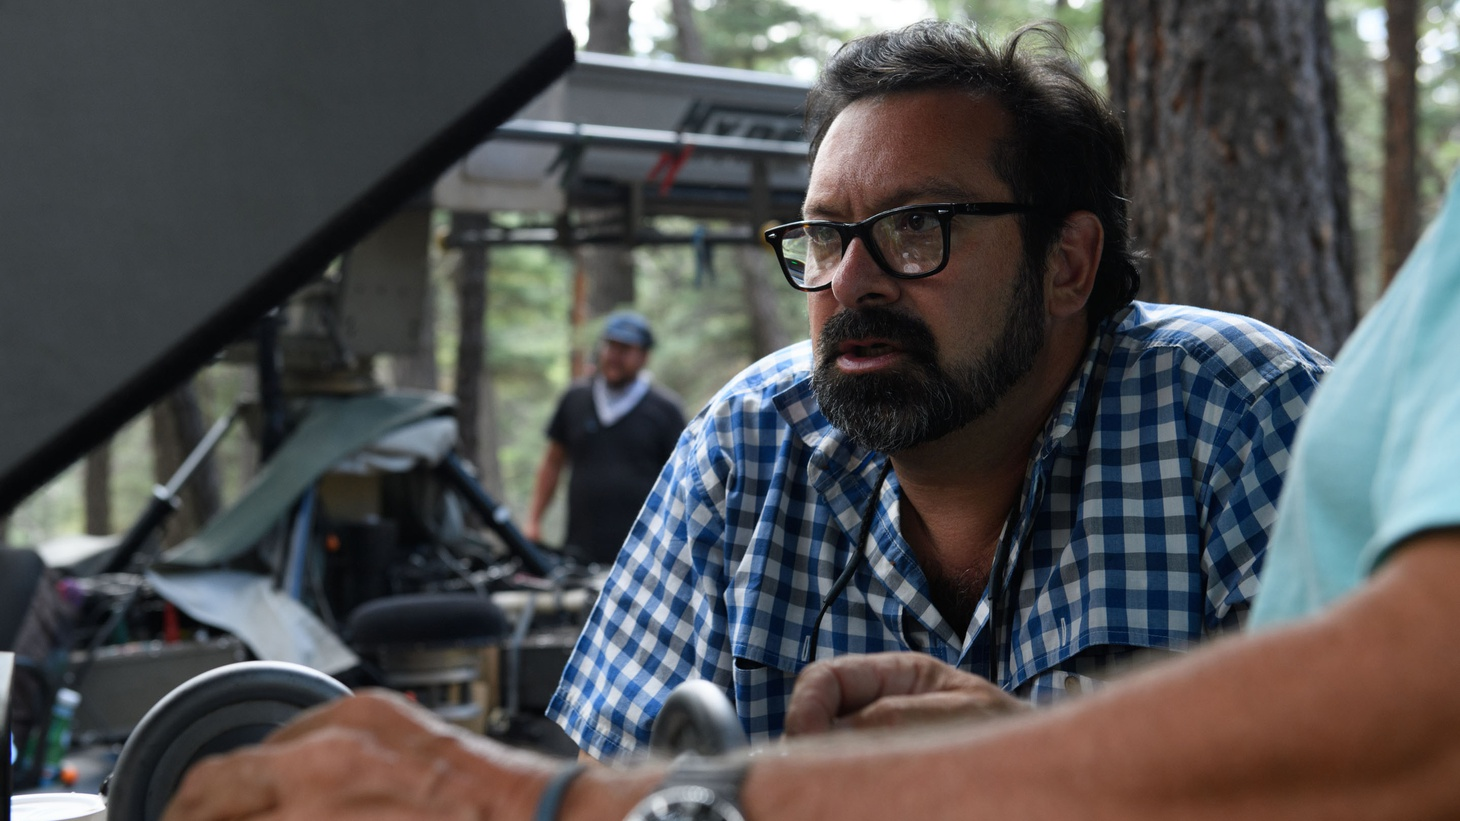 Filmmaker James Mangold has been making character-driven dramas for more than 20 years, but lately, he's been in the X-Men superhero business. In his latest film, Logan, Hugh Jackman plays the slashing Marvel mutant one last time, so Mangold wanted to make something more nuanced than the usual comic-book movie.